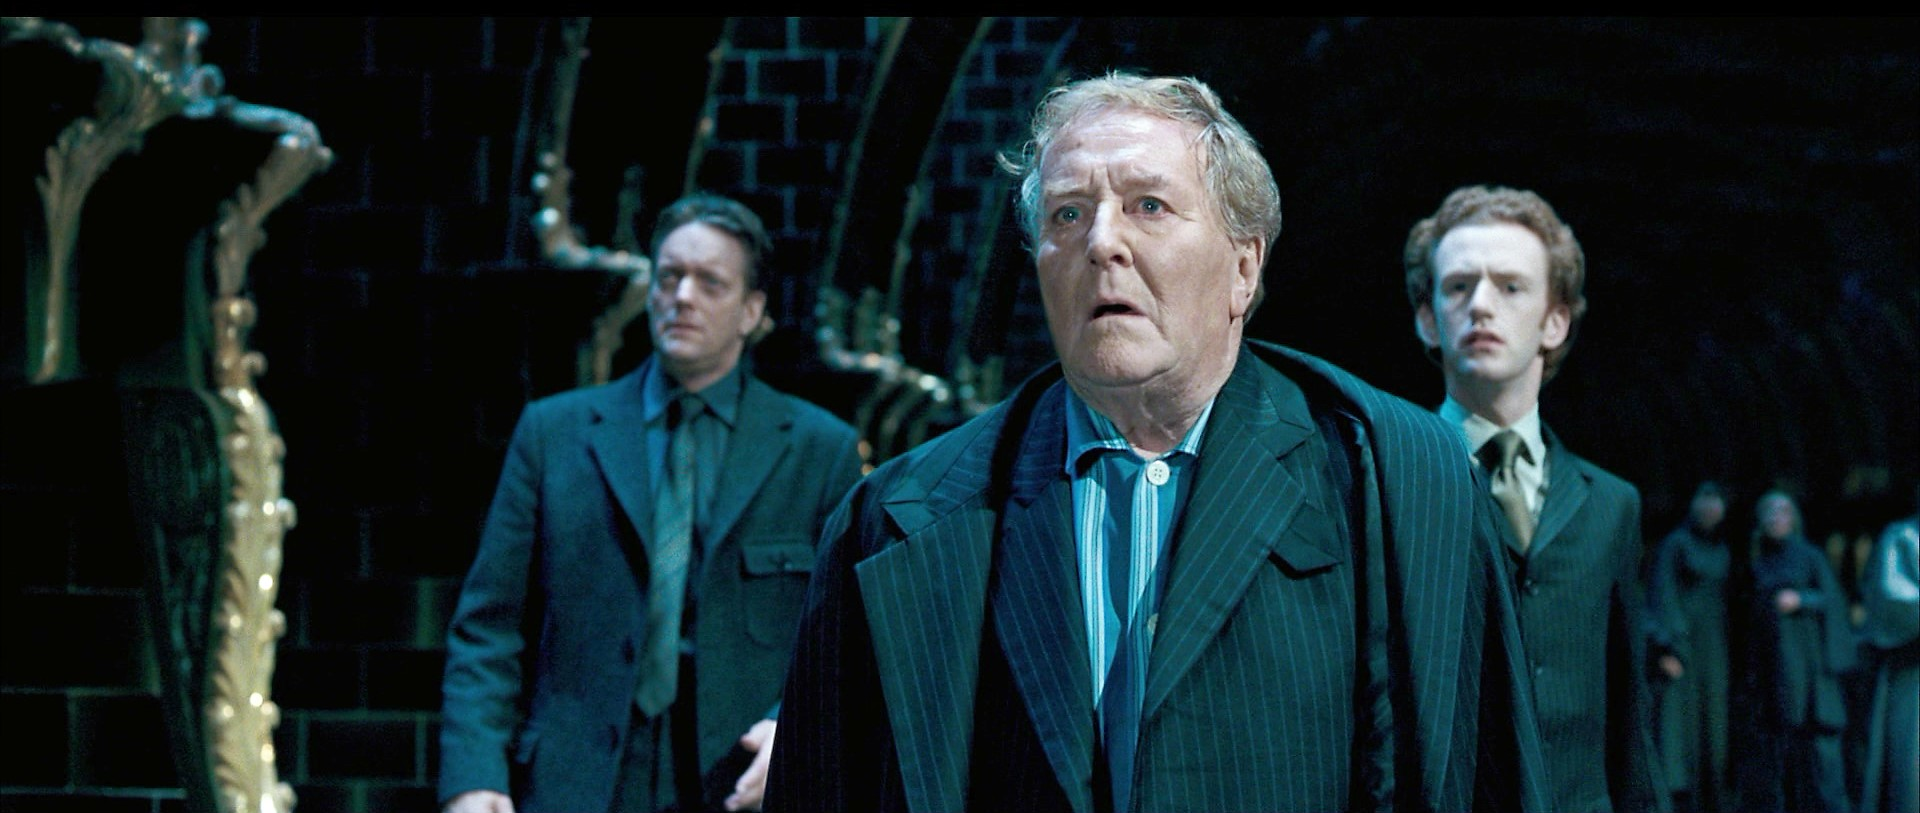 http://images.wikia.com/harrypotter/images/7/72/Auror_Dawlish%2C_Cornelius_Fudge_and_Percy_Weasley.JPG